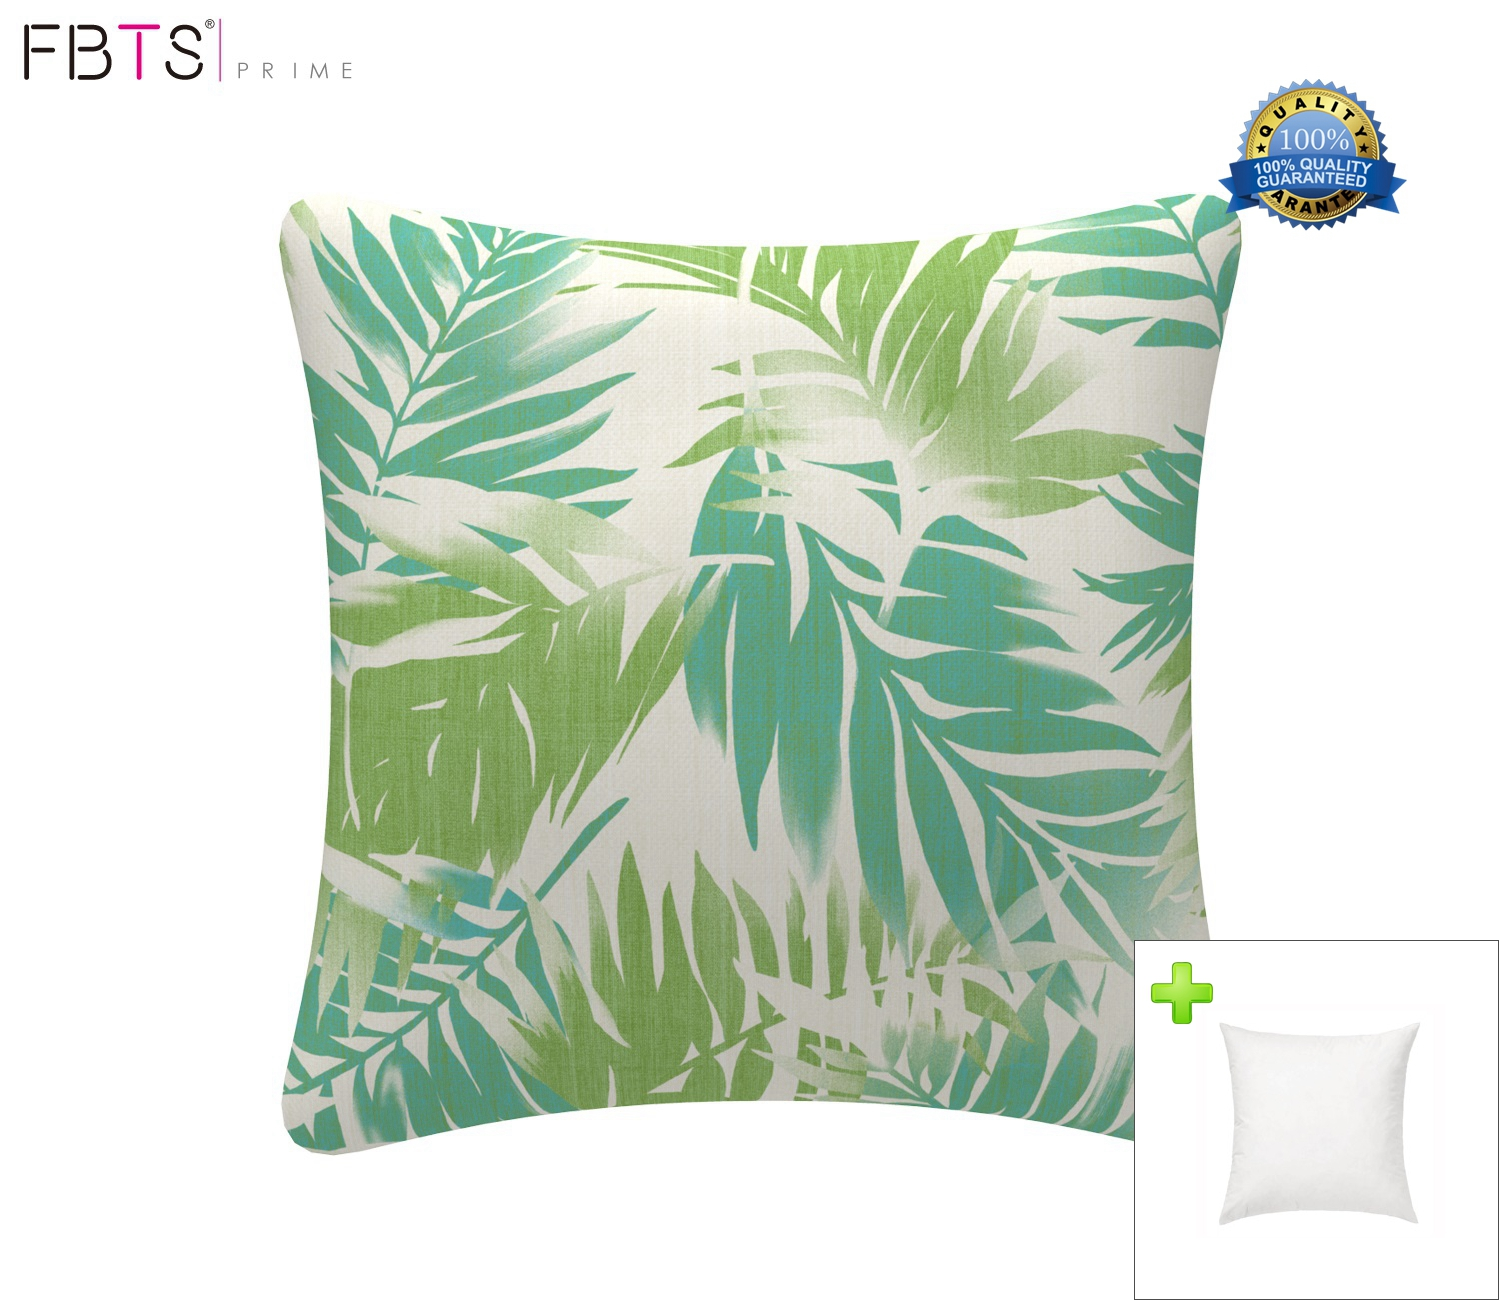 sofa box cushion covers vintage style bed throw pillow with insert indoor outdoor 18 by inches decorative square cover sham leaf mint for couch patio fbts prime